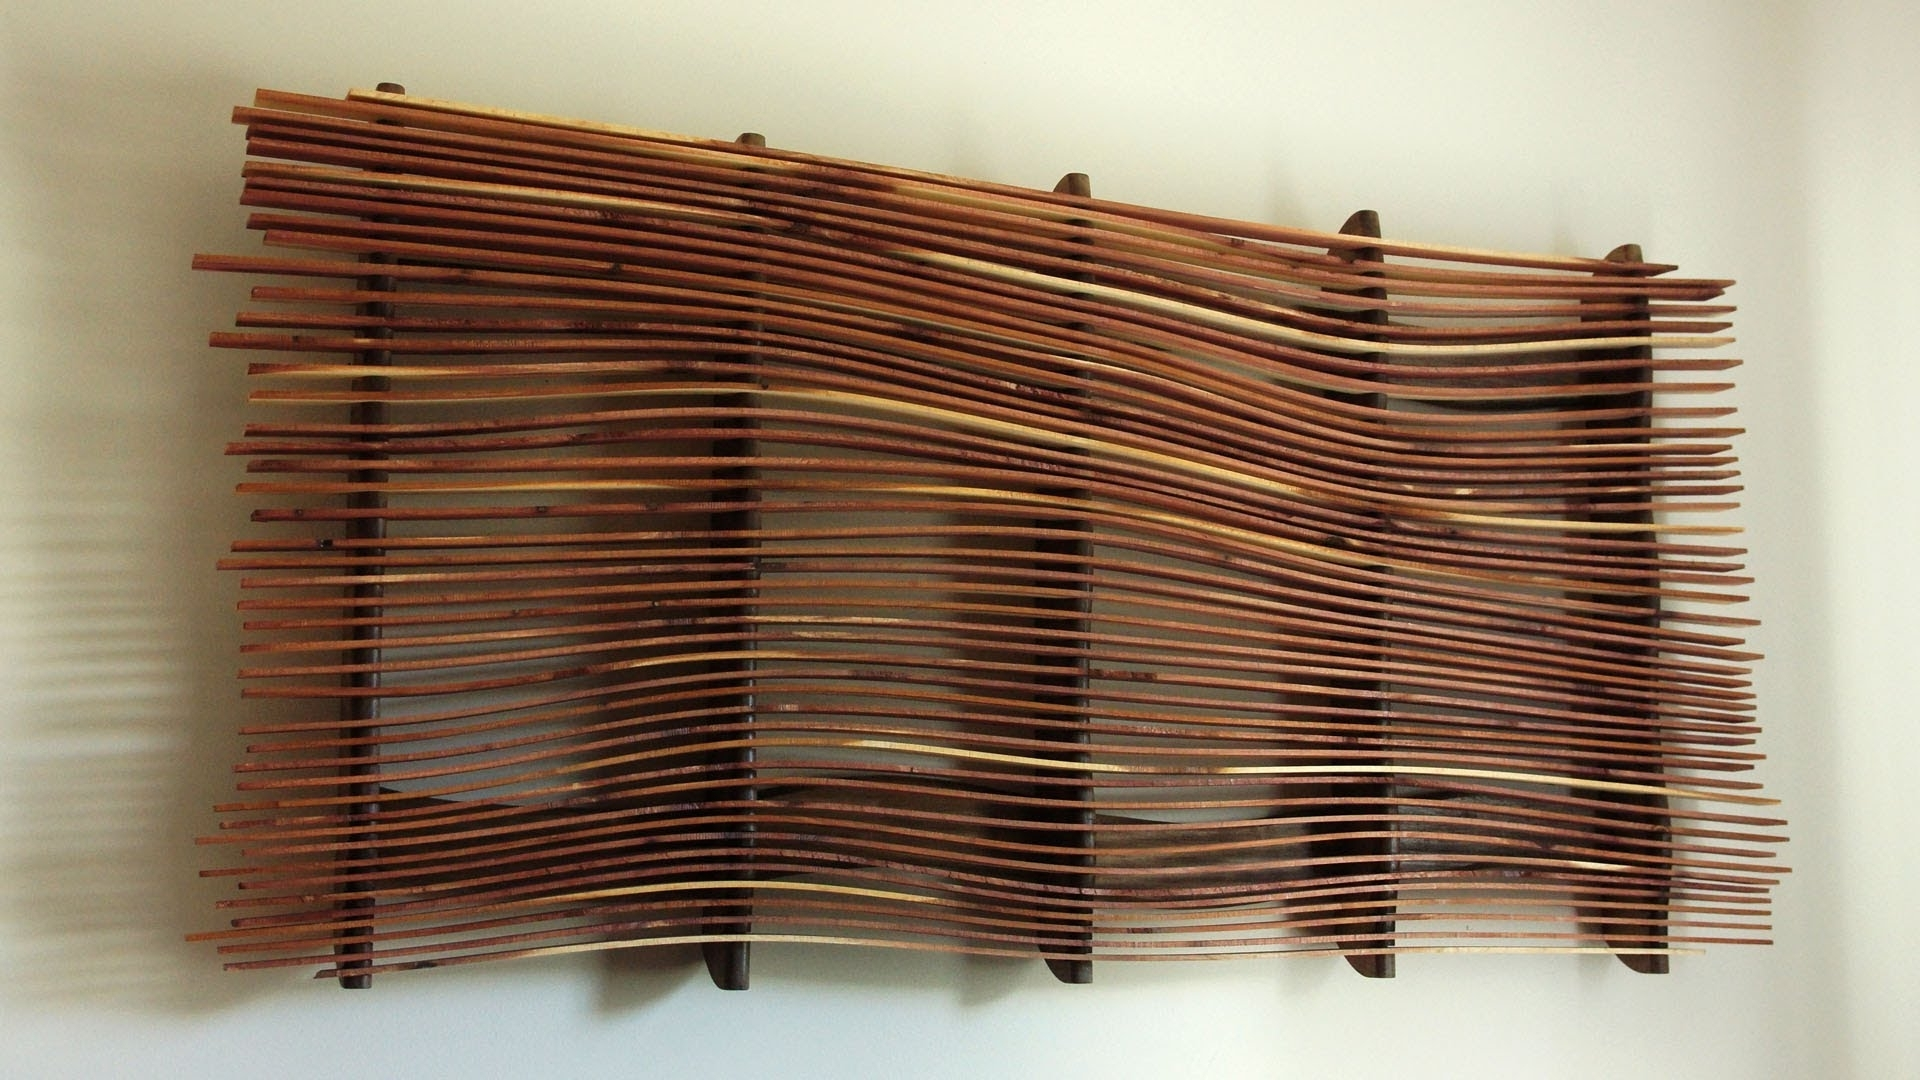 Wall Art From Scrap Wood – Youtube Pertaining To Most Recent Wooden Wall Art (View 1 of 15)